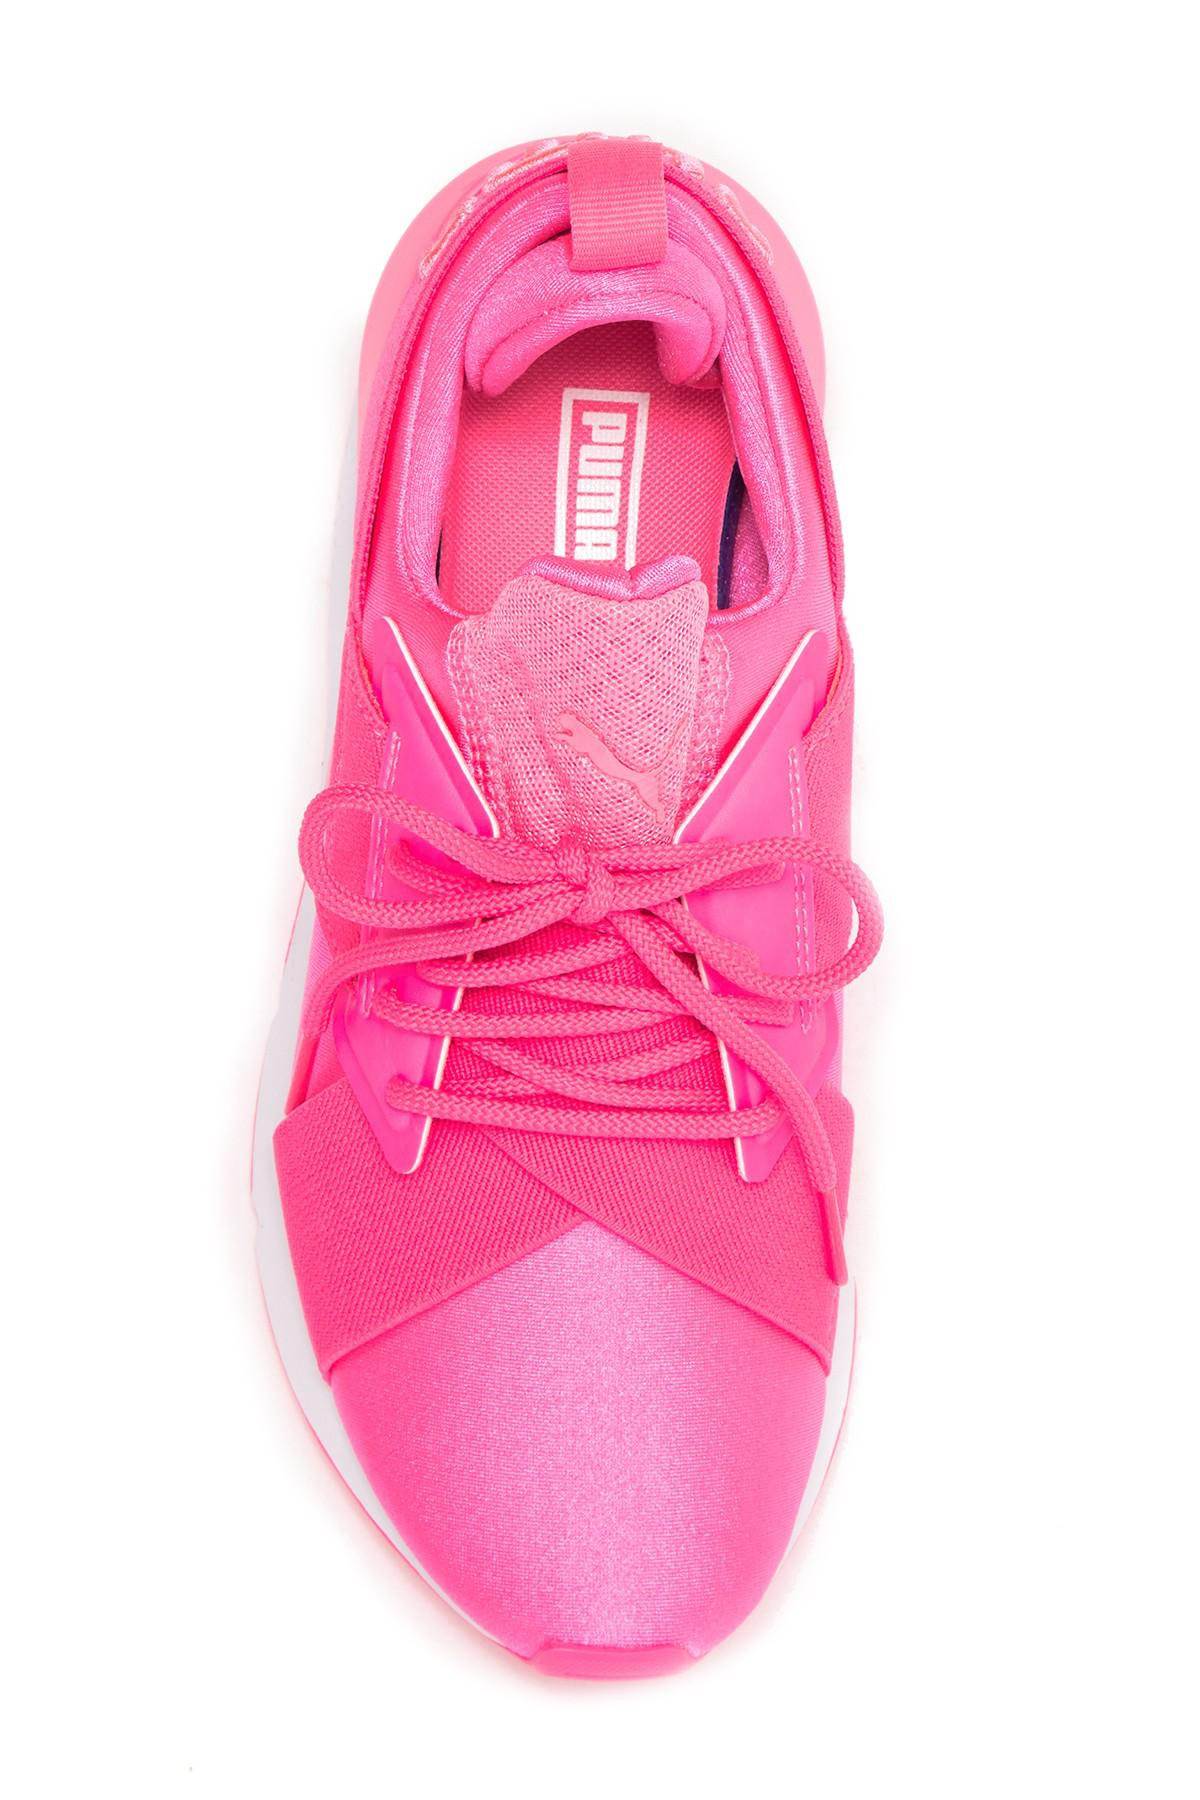 6b6928403ad5 PUMA Muse Satin Ep in Pink - Save 49% - Lyst